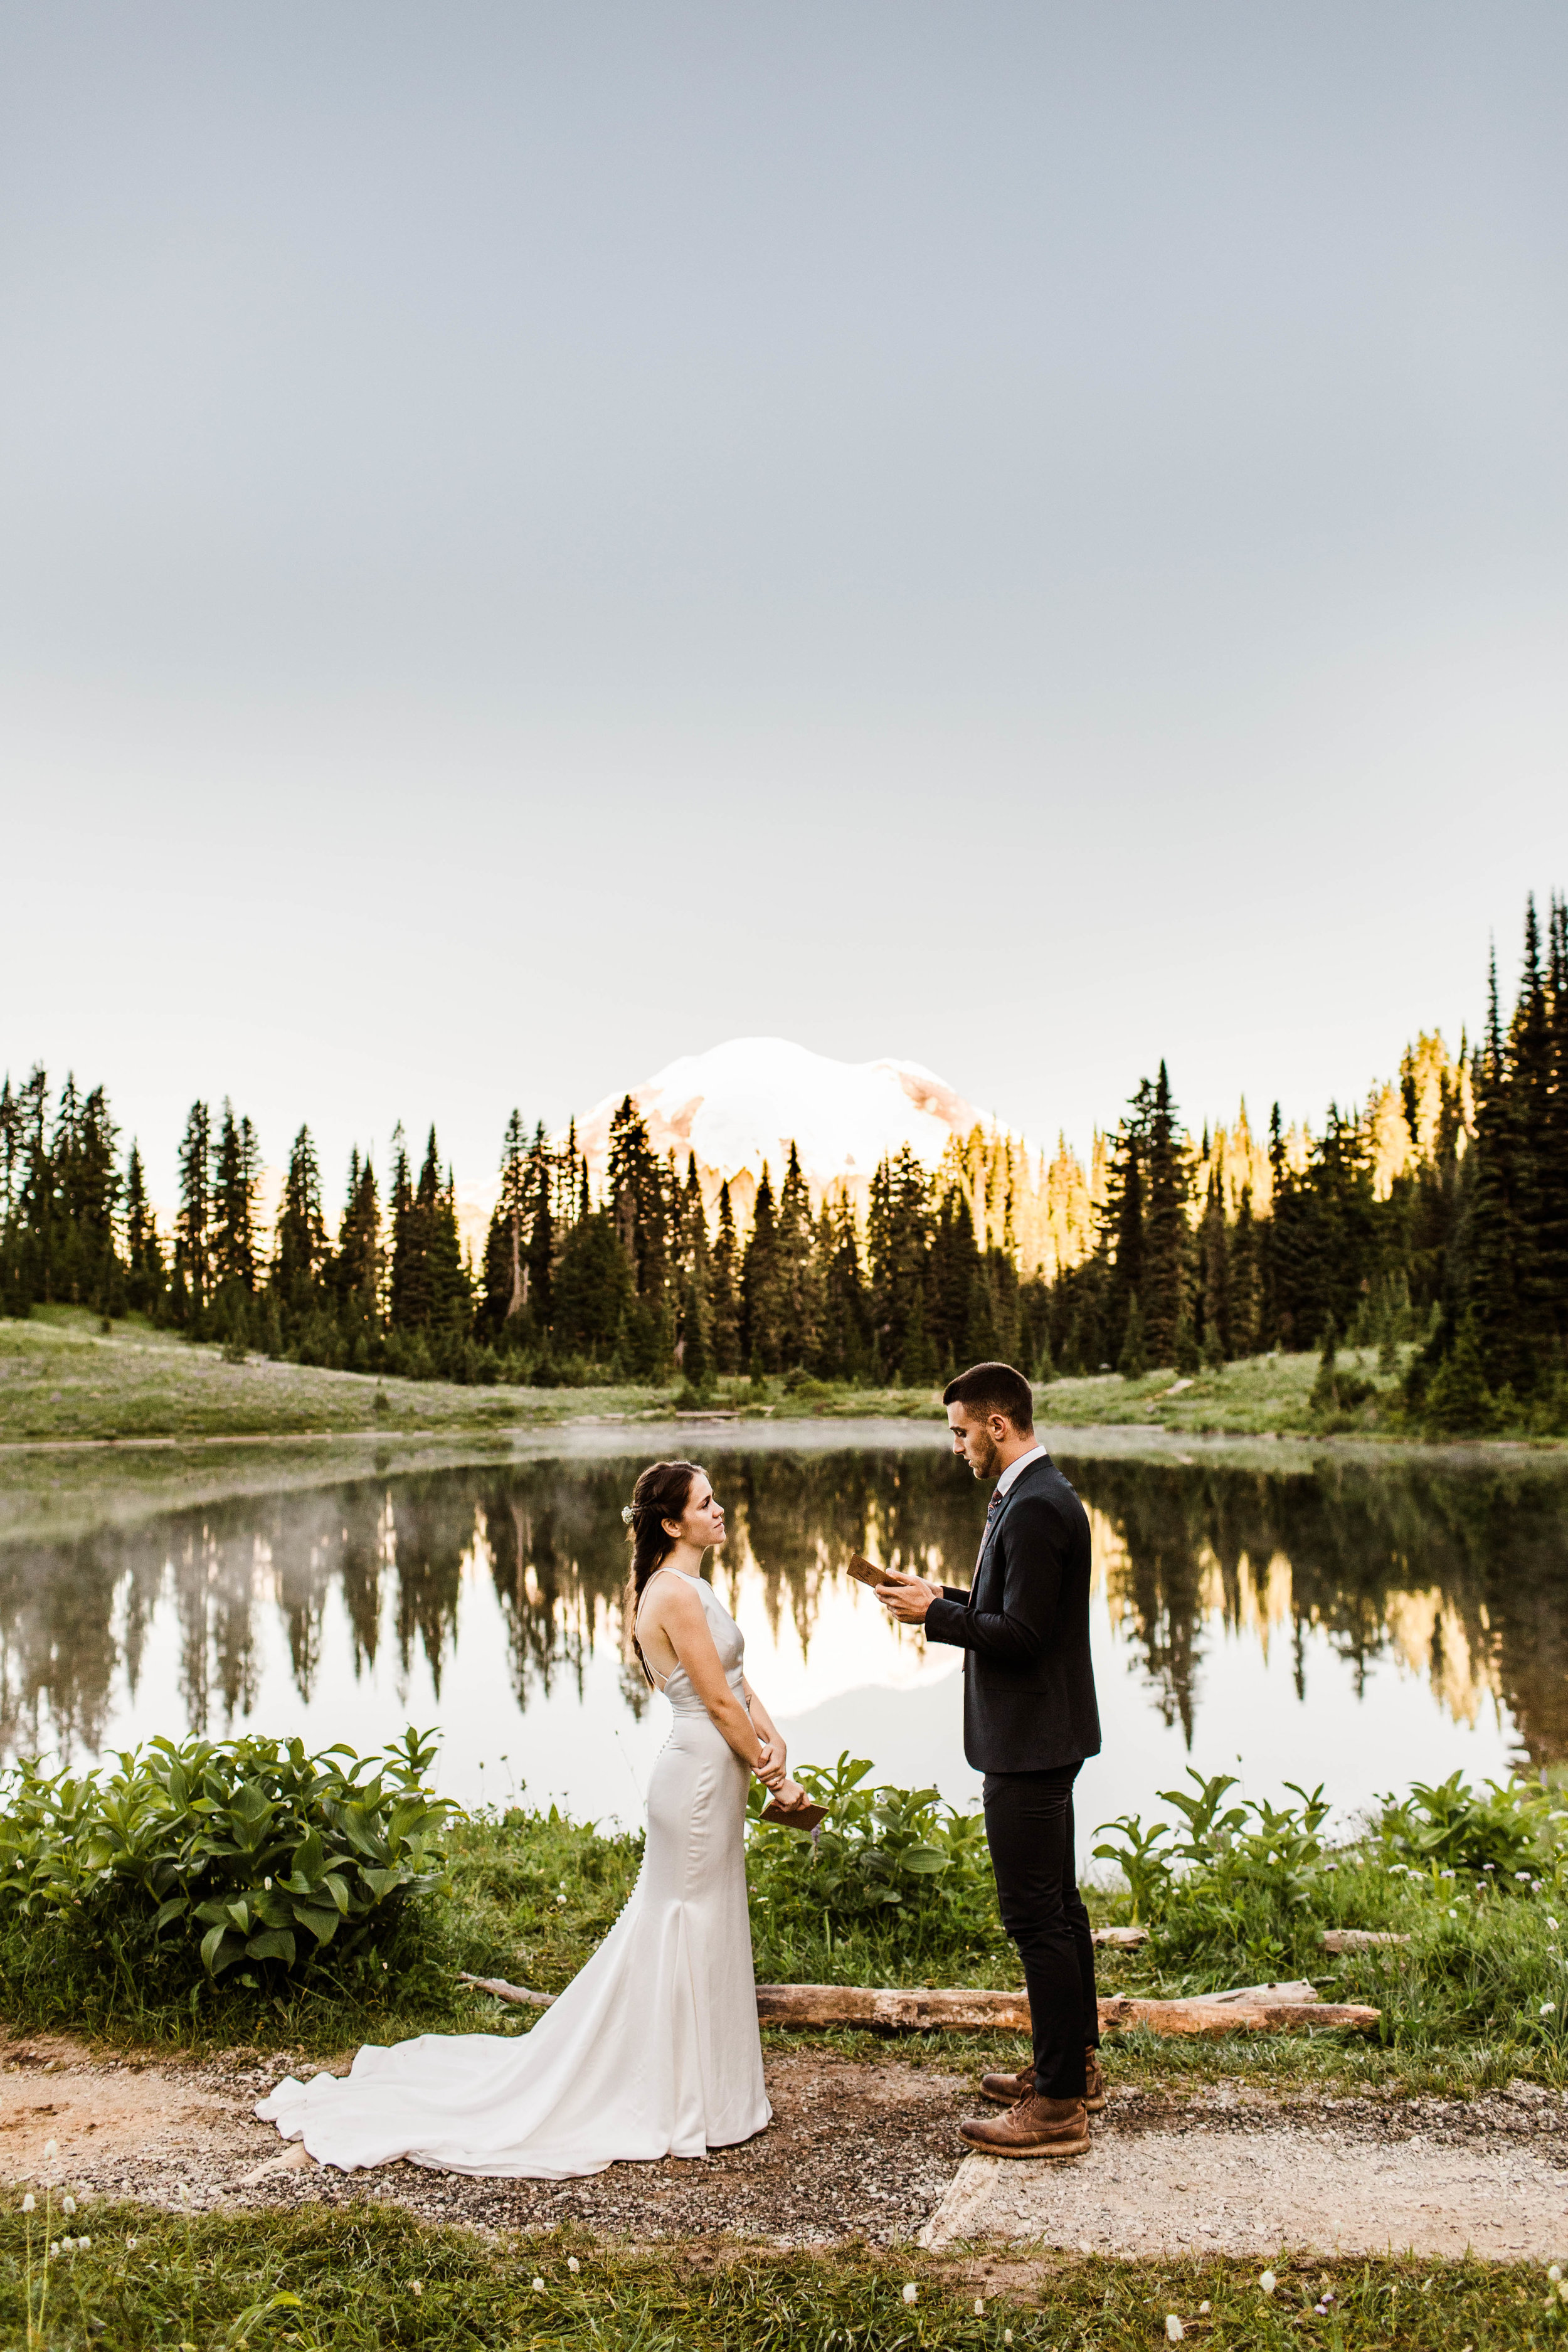 groom reading vows during Mount Rainier elopement ceremony in the mountains | Washington national park adventure wedding photographers